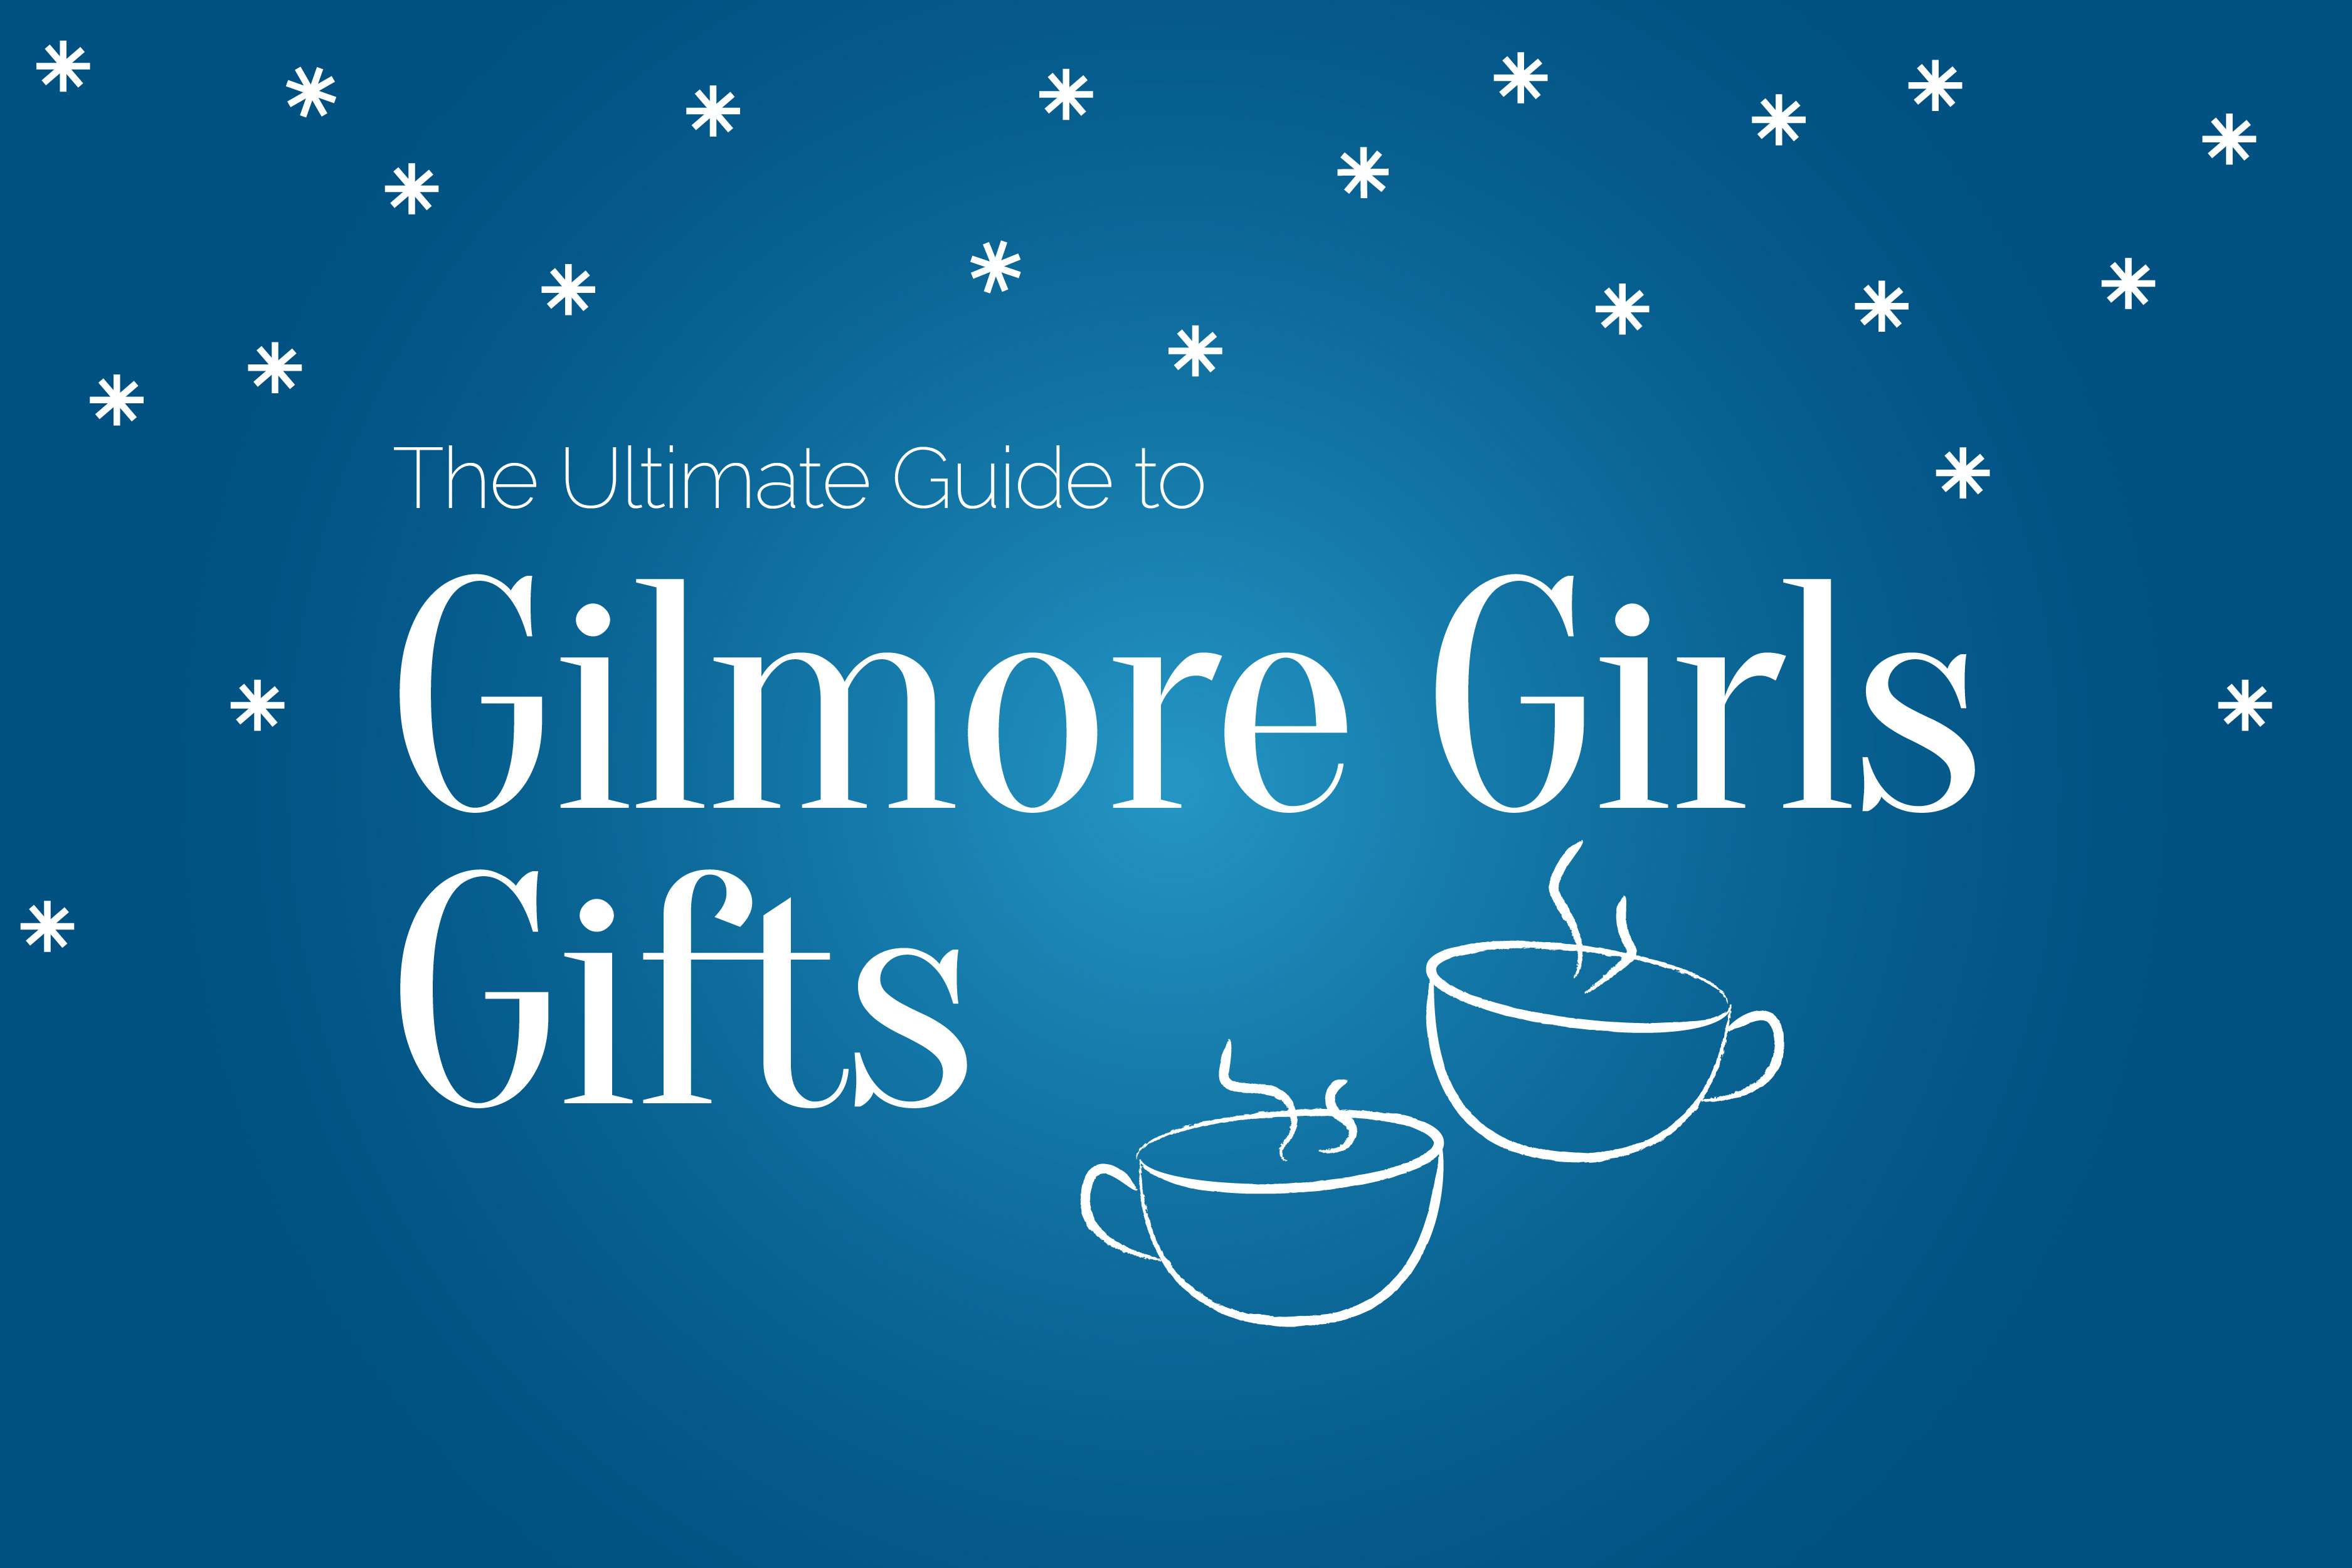 The Ultimate Guide to Gilmore Girls Gifts